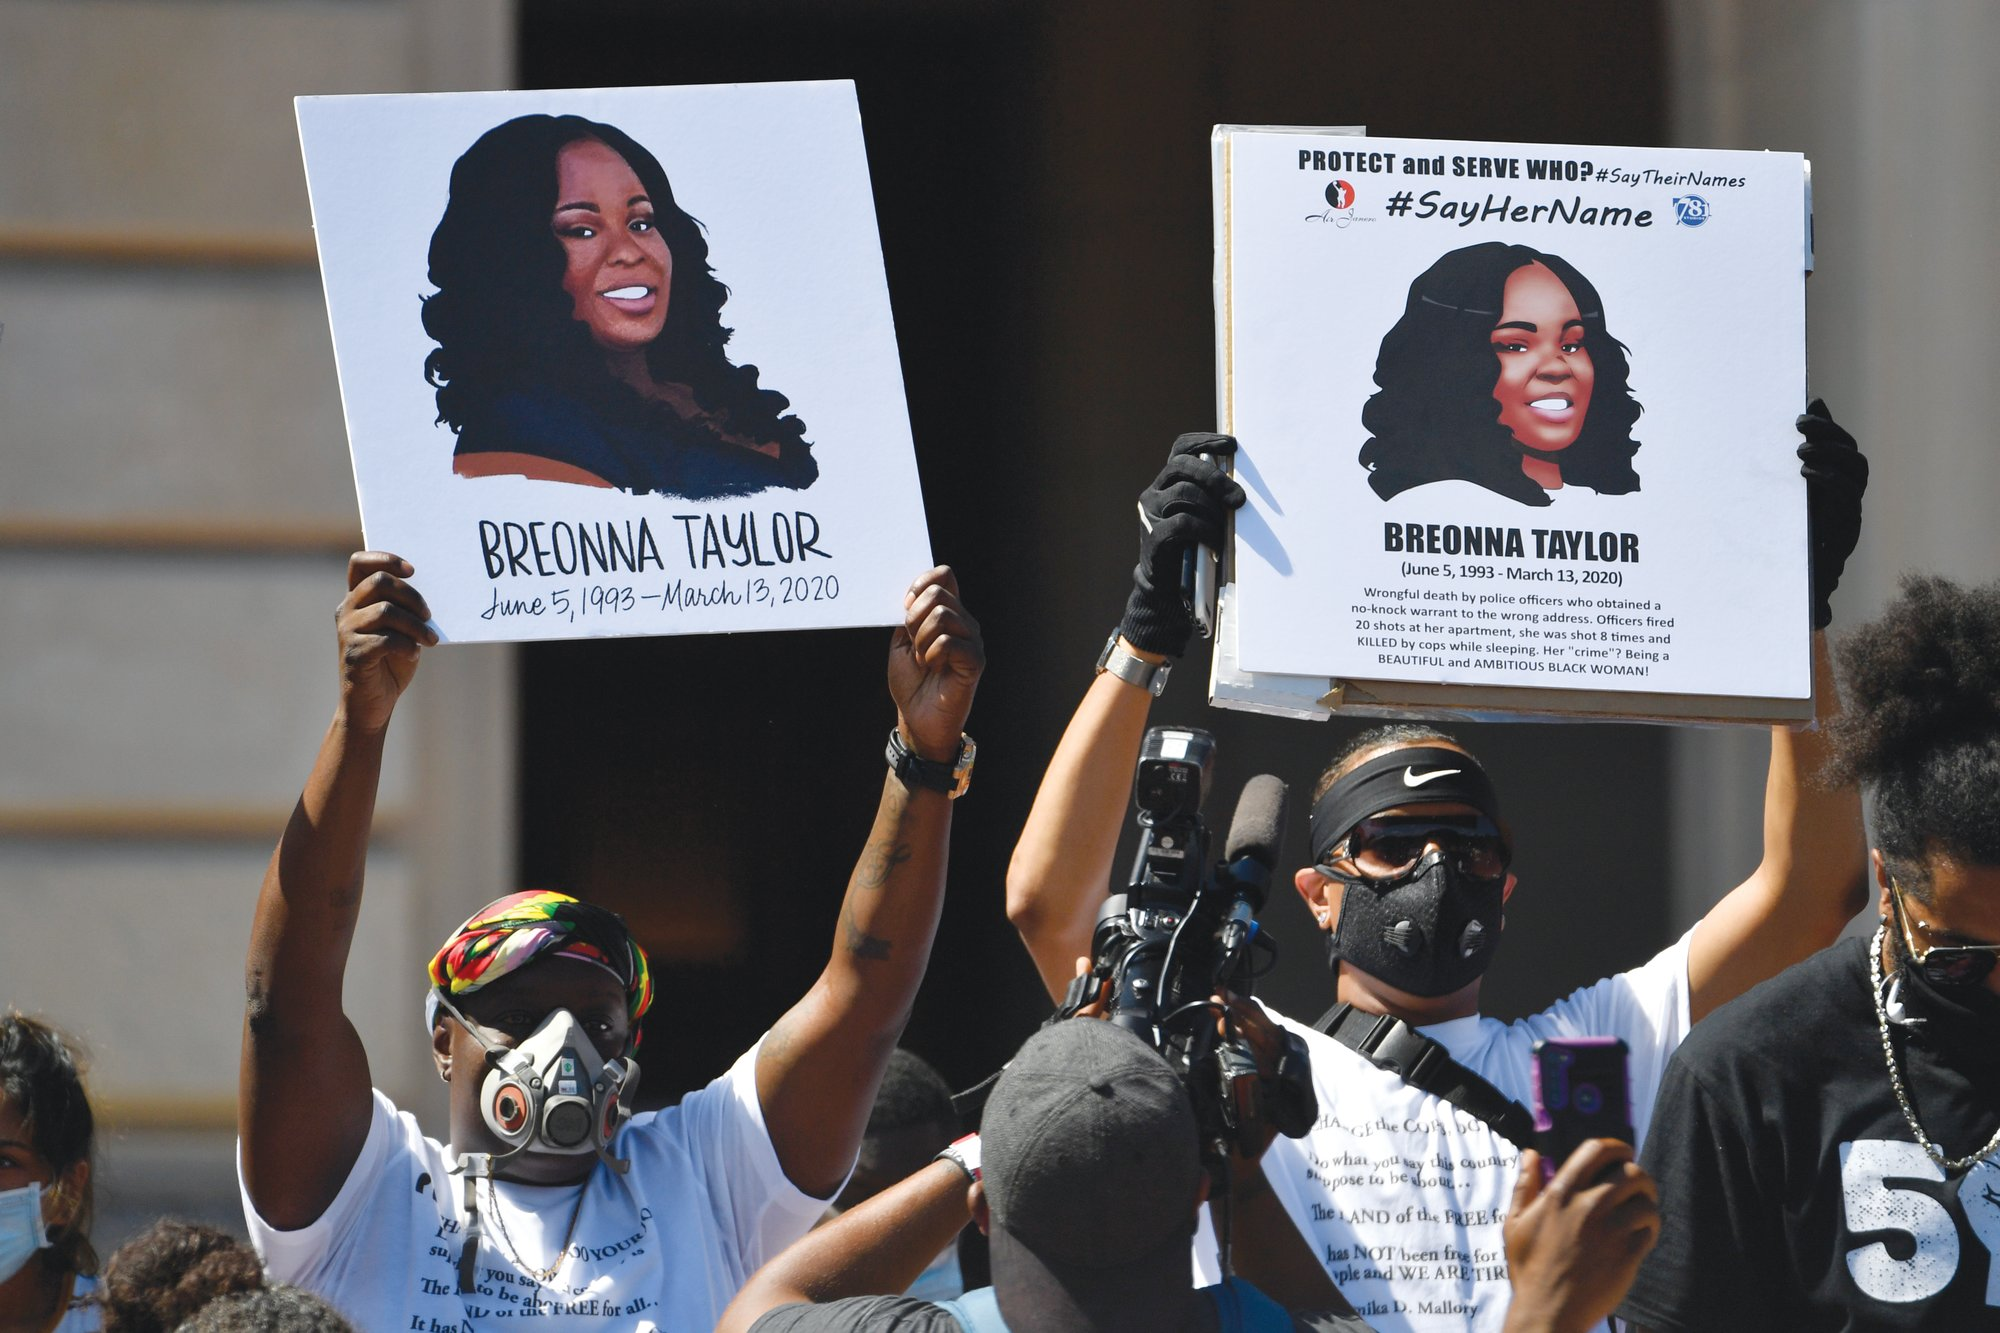 Signs showing Breonna Taylor are held during a rally in her honor on the steps of the Kentucky State Capitol in Frankfort, Kentucky, on June 25. The city of Louisville will pay several million dollars to the mother of Breonna Taylor and install police reforms as part of a settlement of a lawsuit from Taylor's family, The Associated Press has learned.